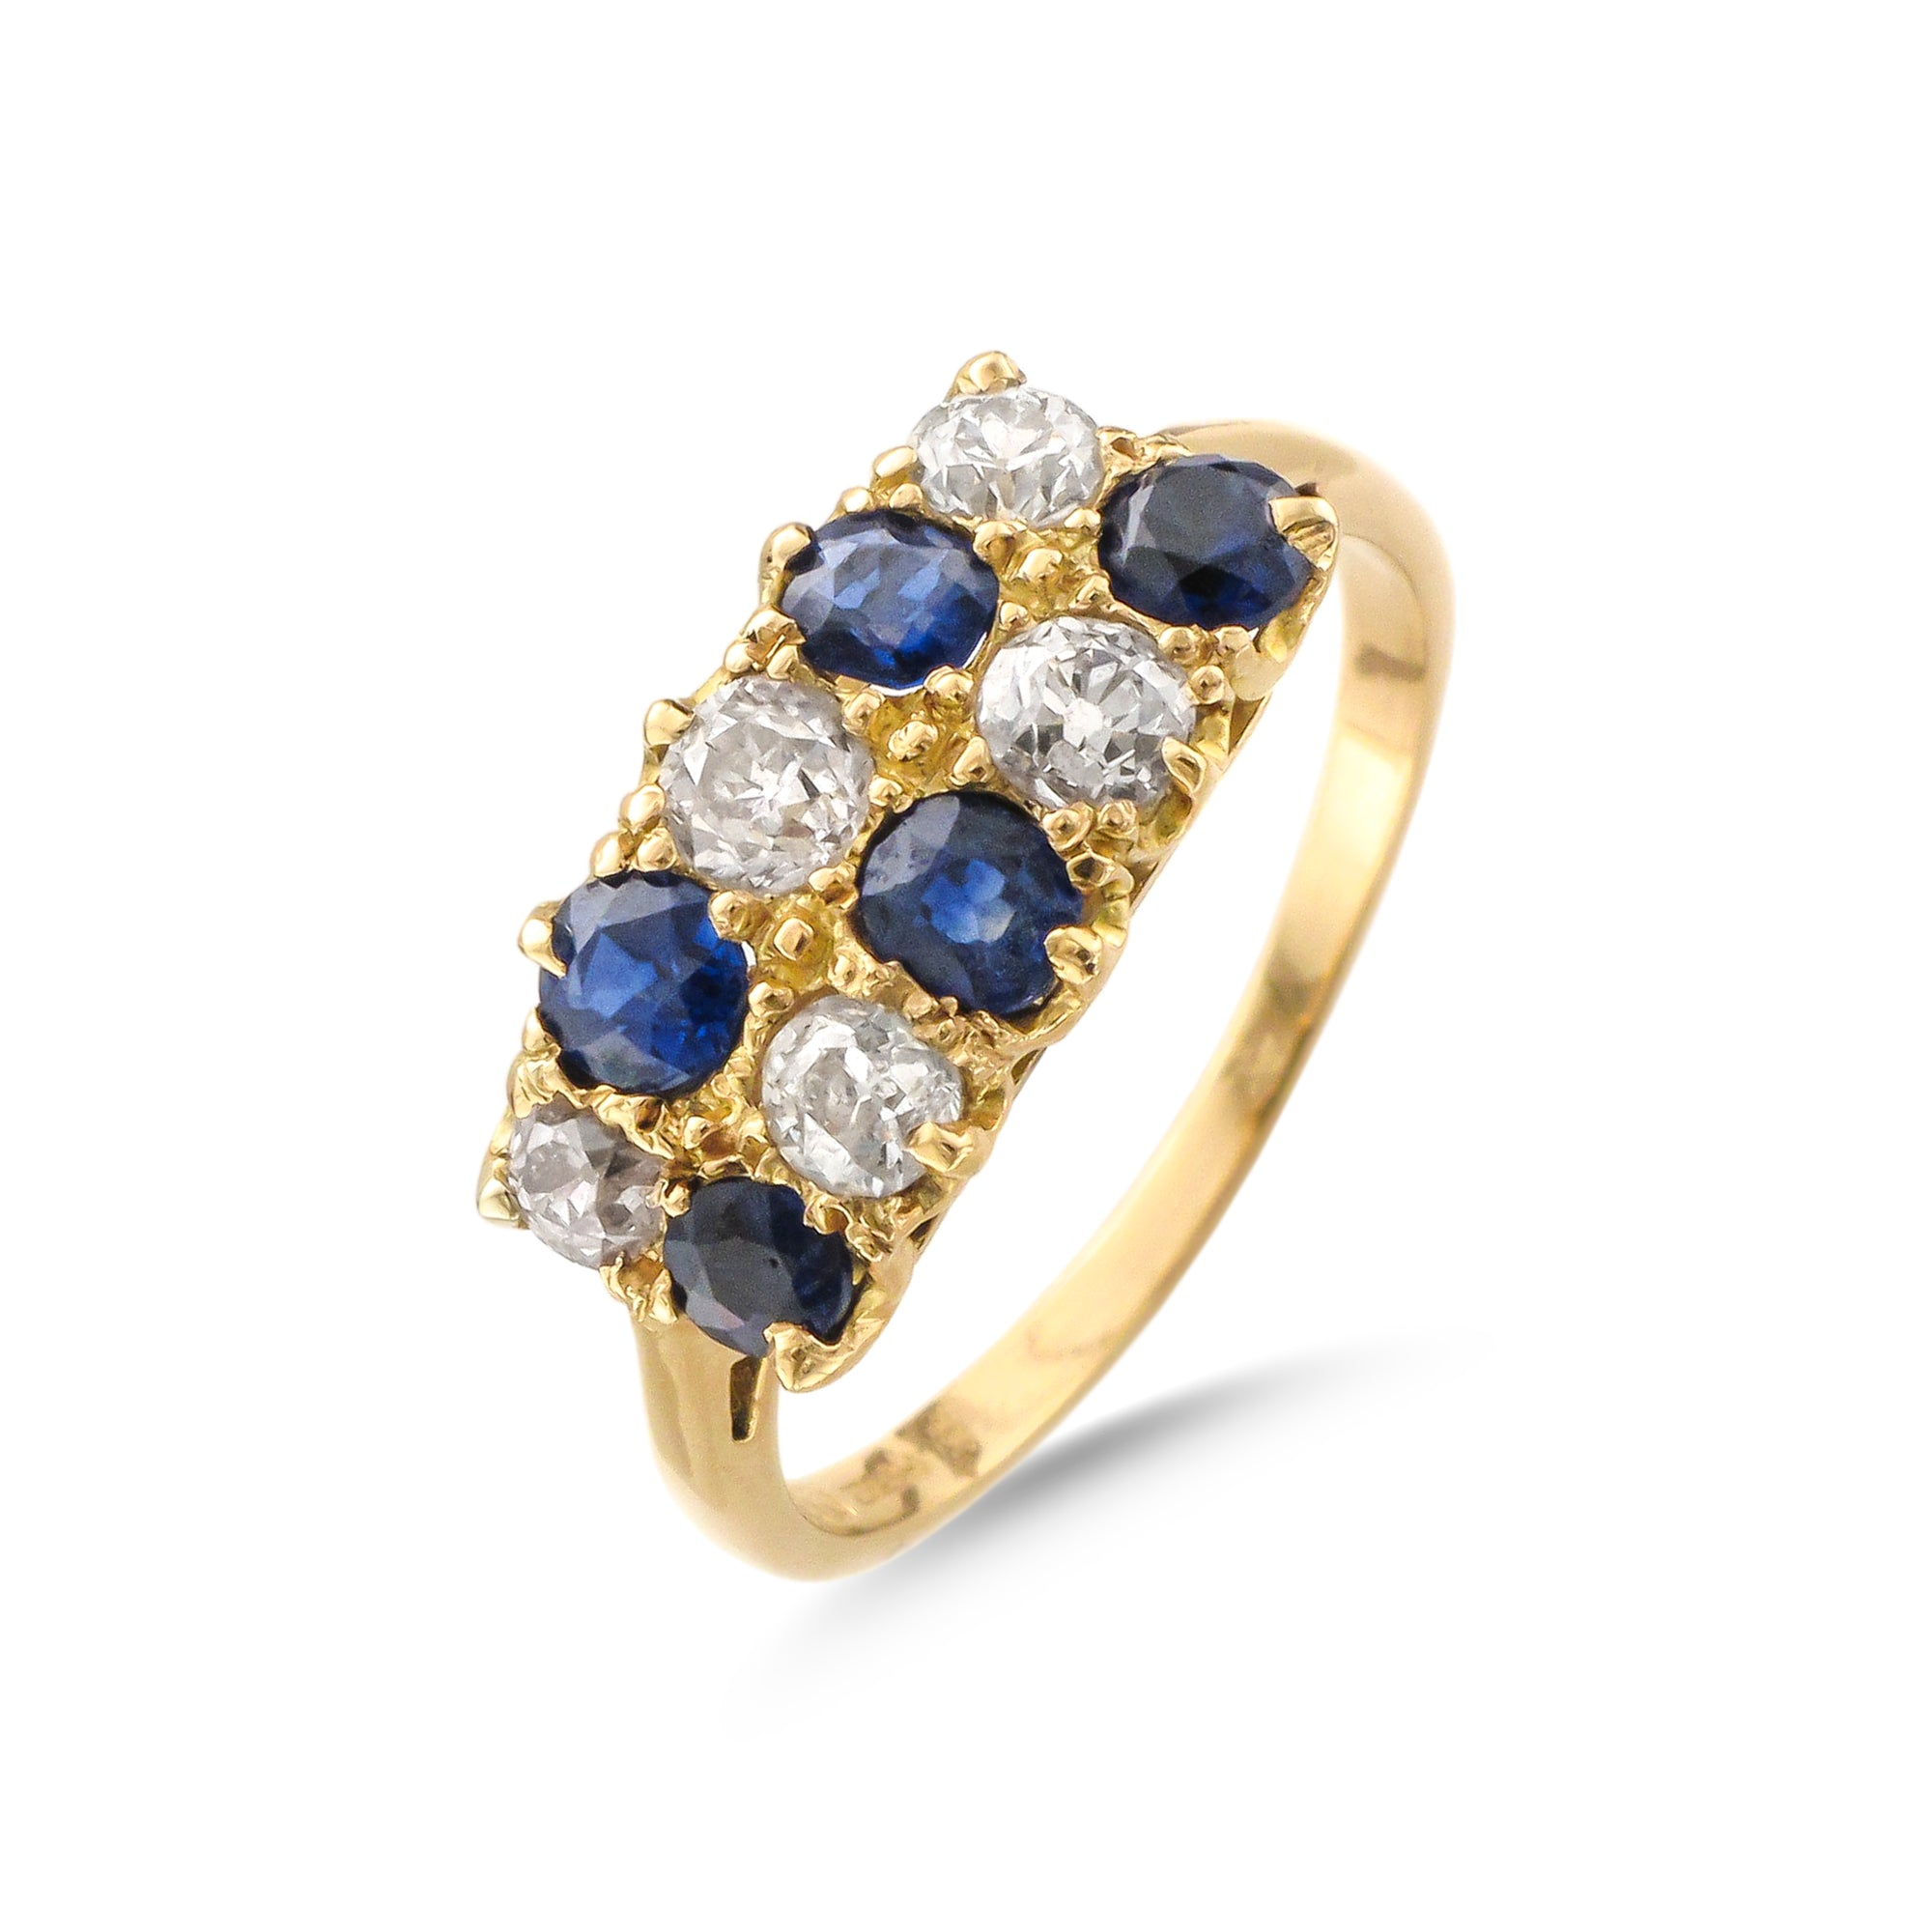 Vintage 18ct Yellow Gold Sapphire and Diamond Ring